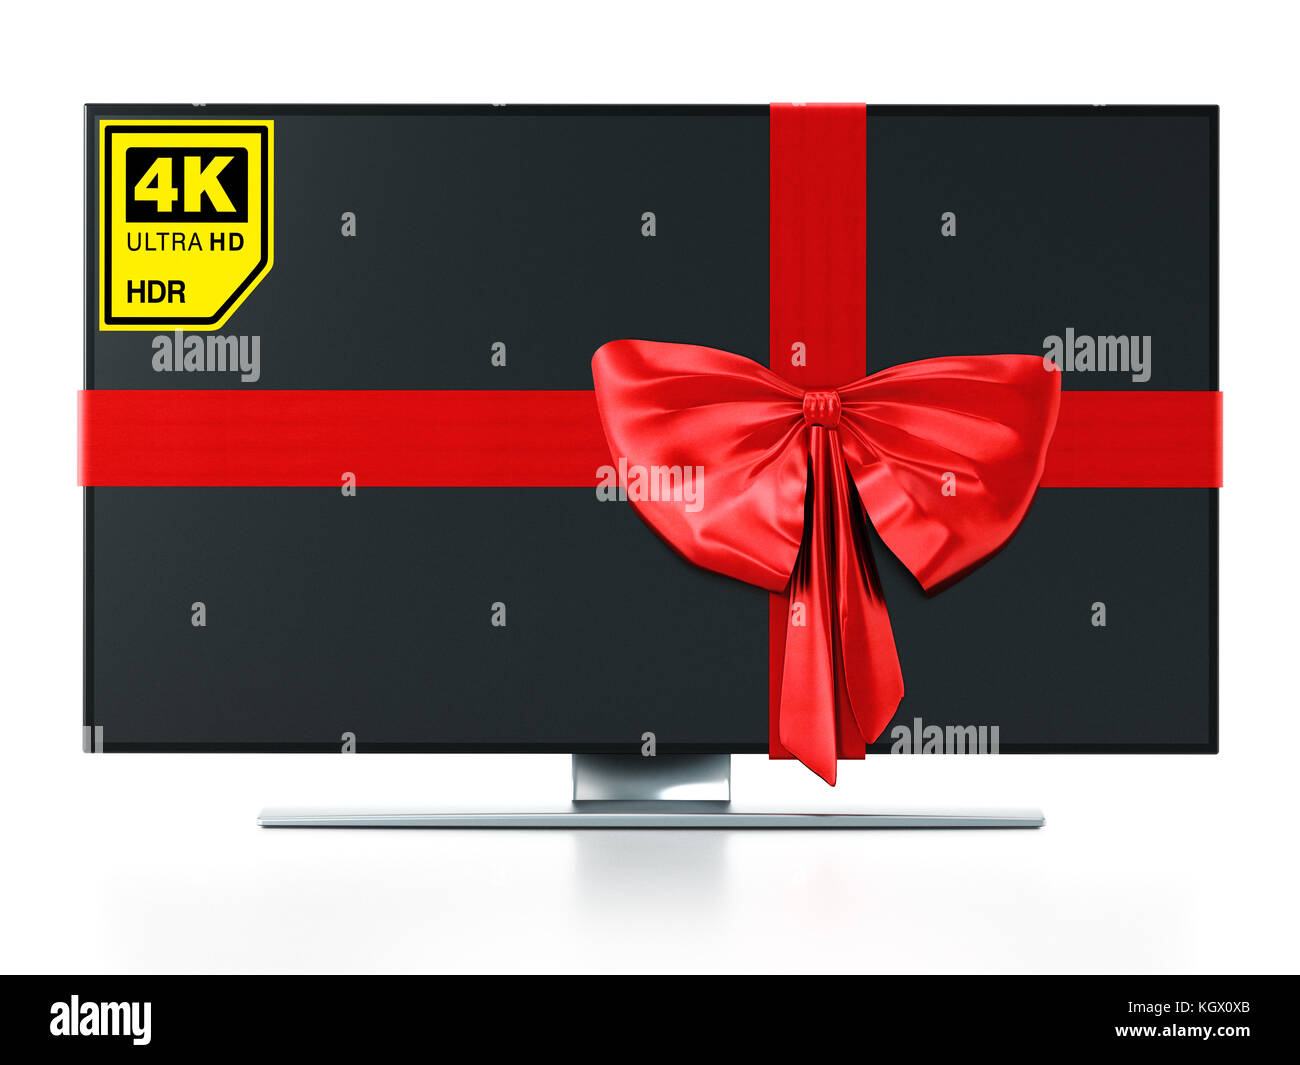 4K Ultra HD TV wrapped with red ribbon. 3D illustration. - Stock Image